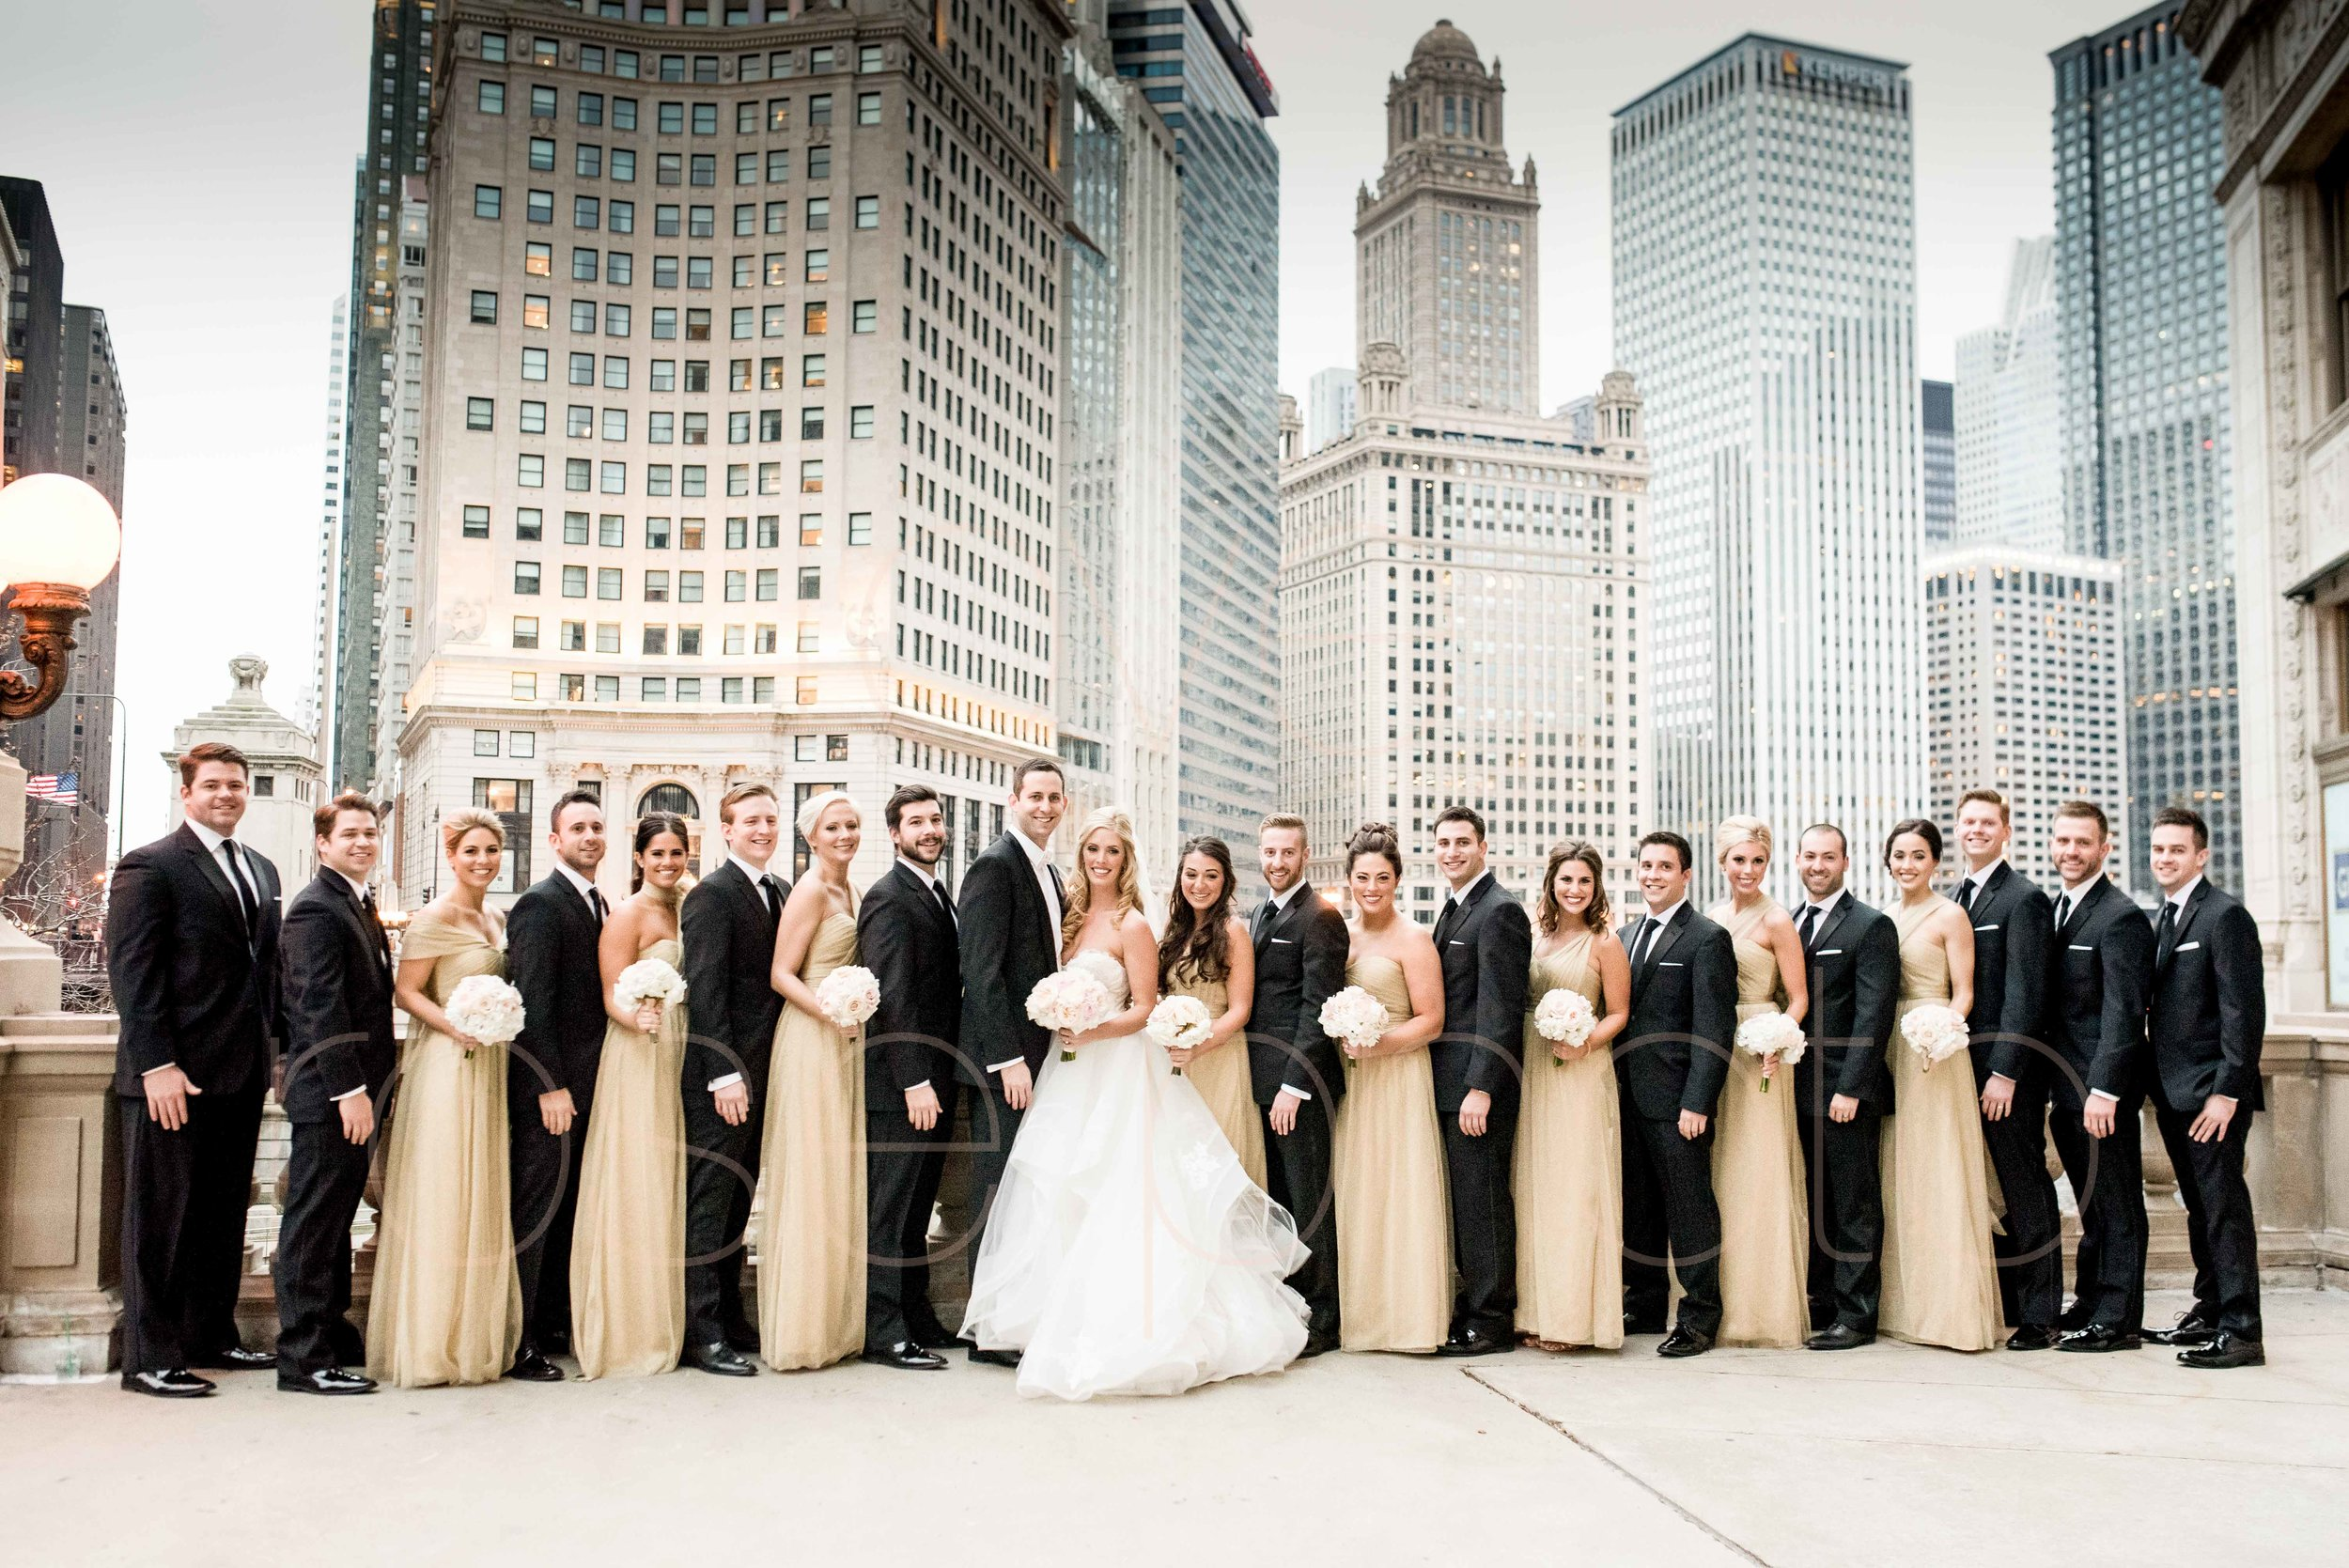 Rose Photo downtown Chicago wedding mag mile new years eve best wedding photography-29.jpg